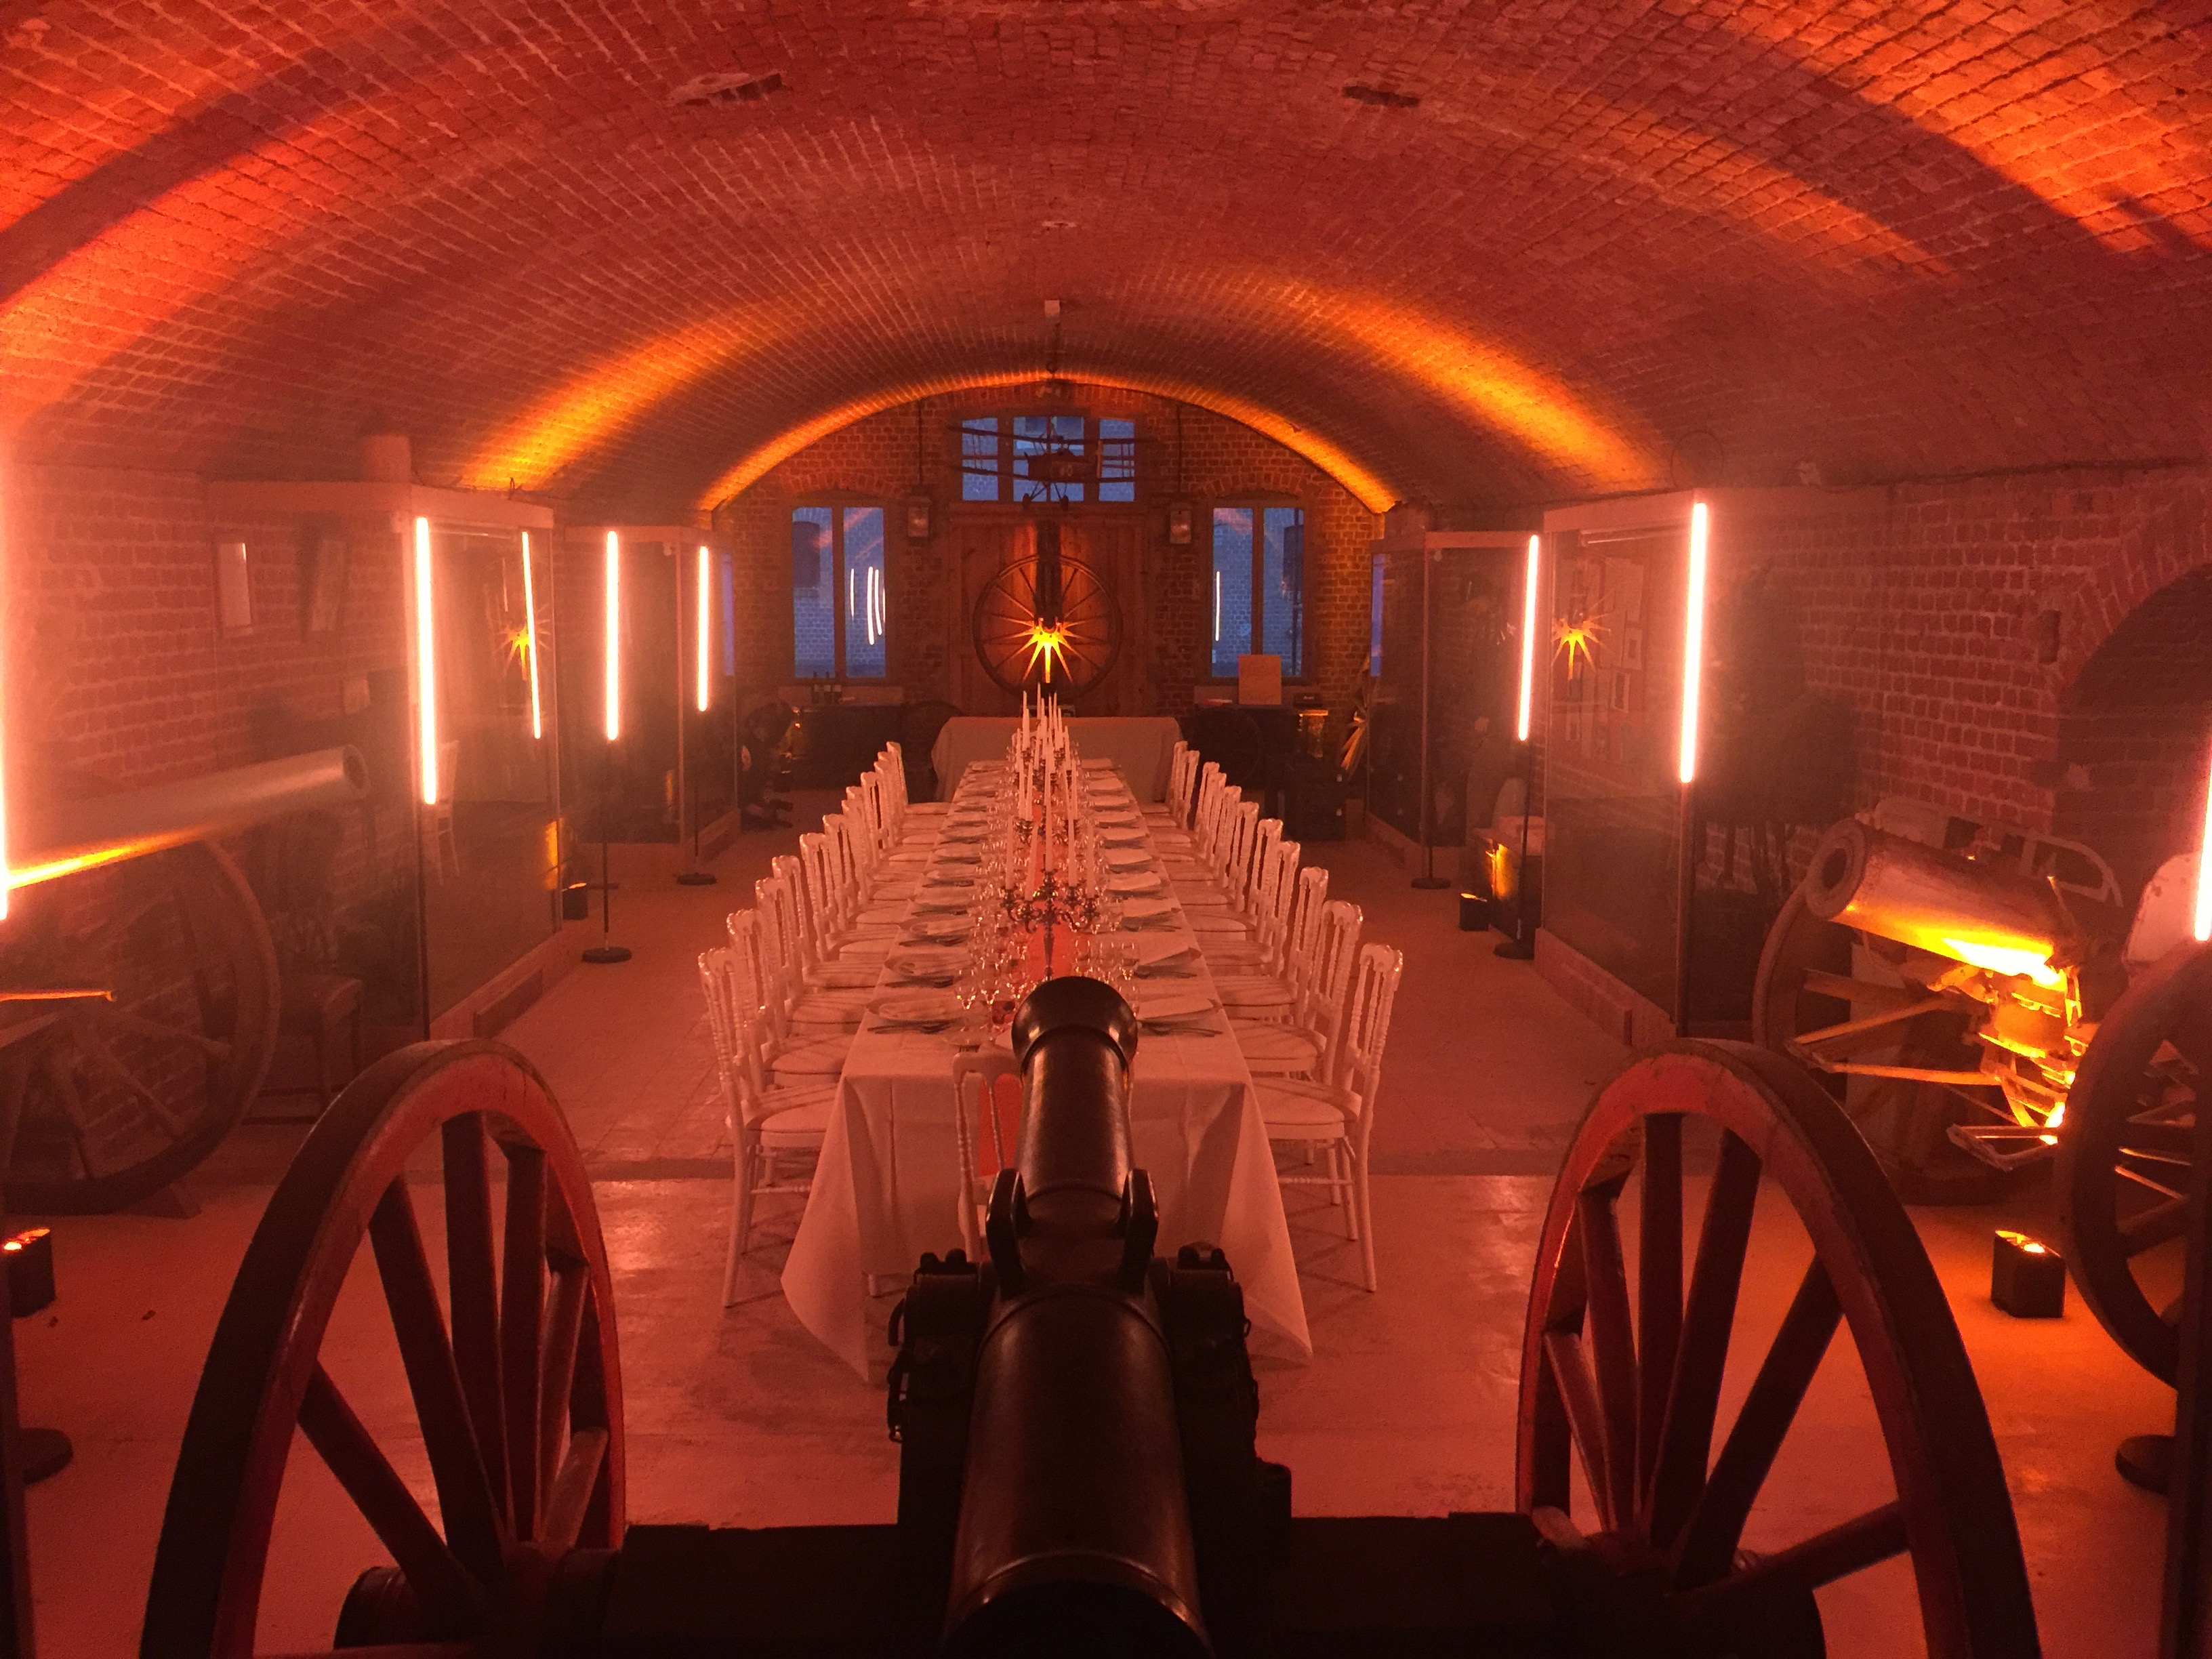 Leboncoin: Immersive dinner tour in 8 French cities